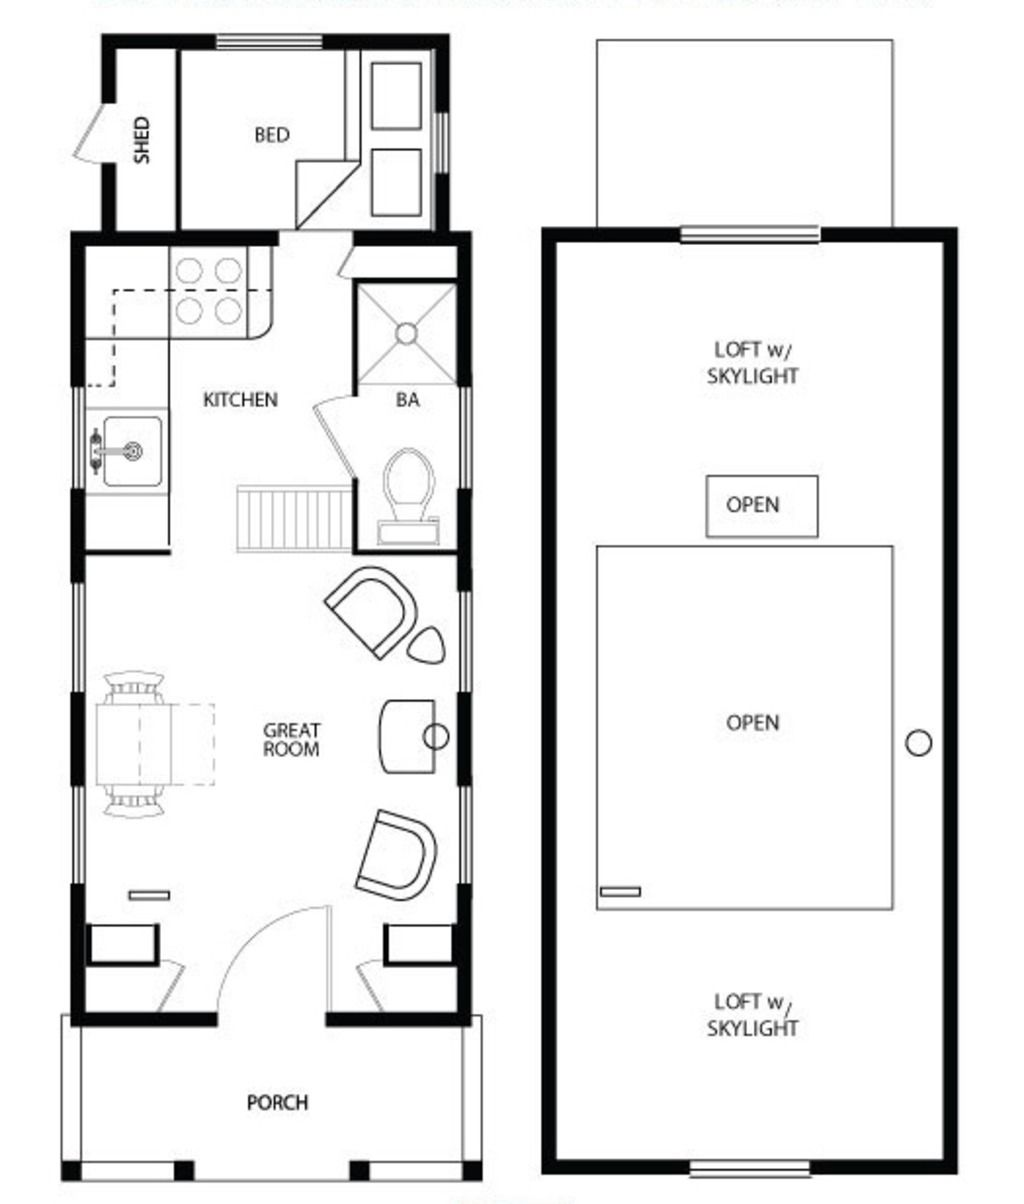 17 Best images about tiny house floor plans on Pinterest Tiny